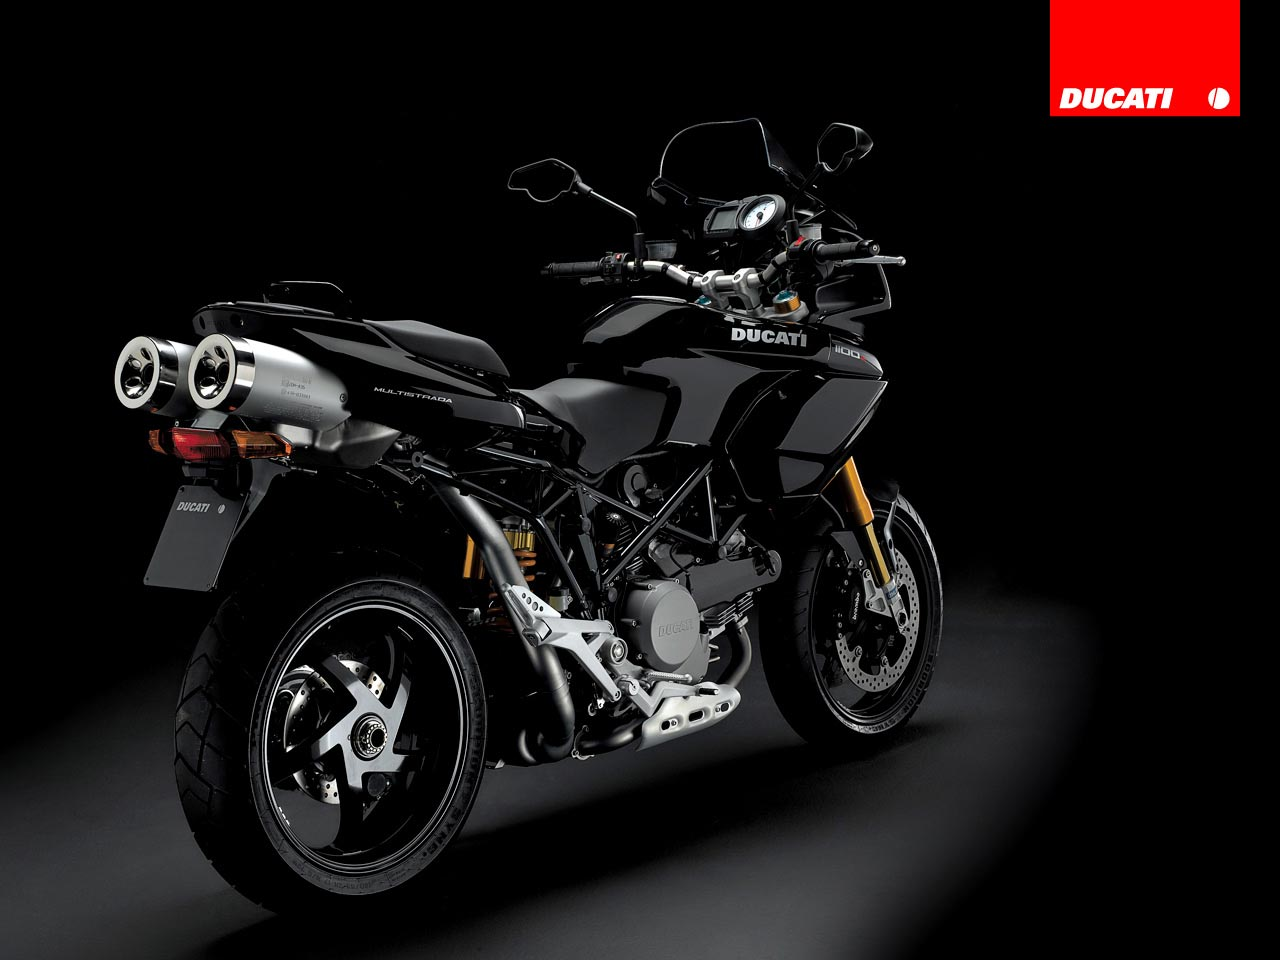 Ducati Multistrada 1100 S 2008 wallpapers #12768